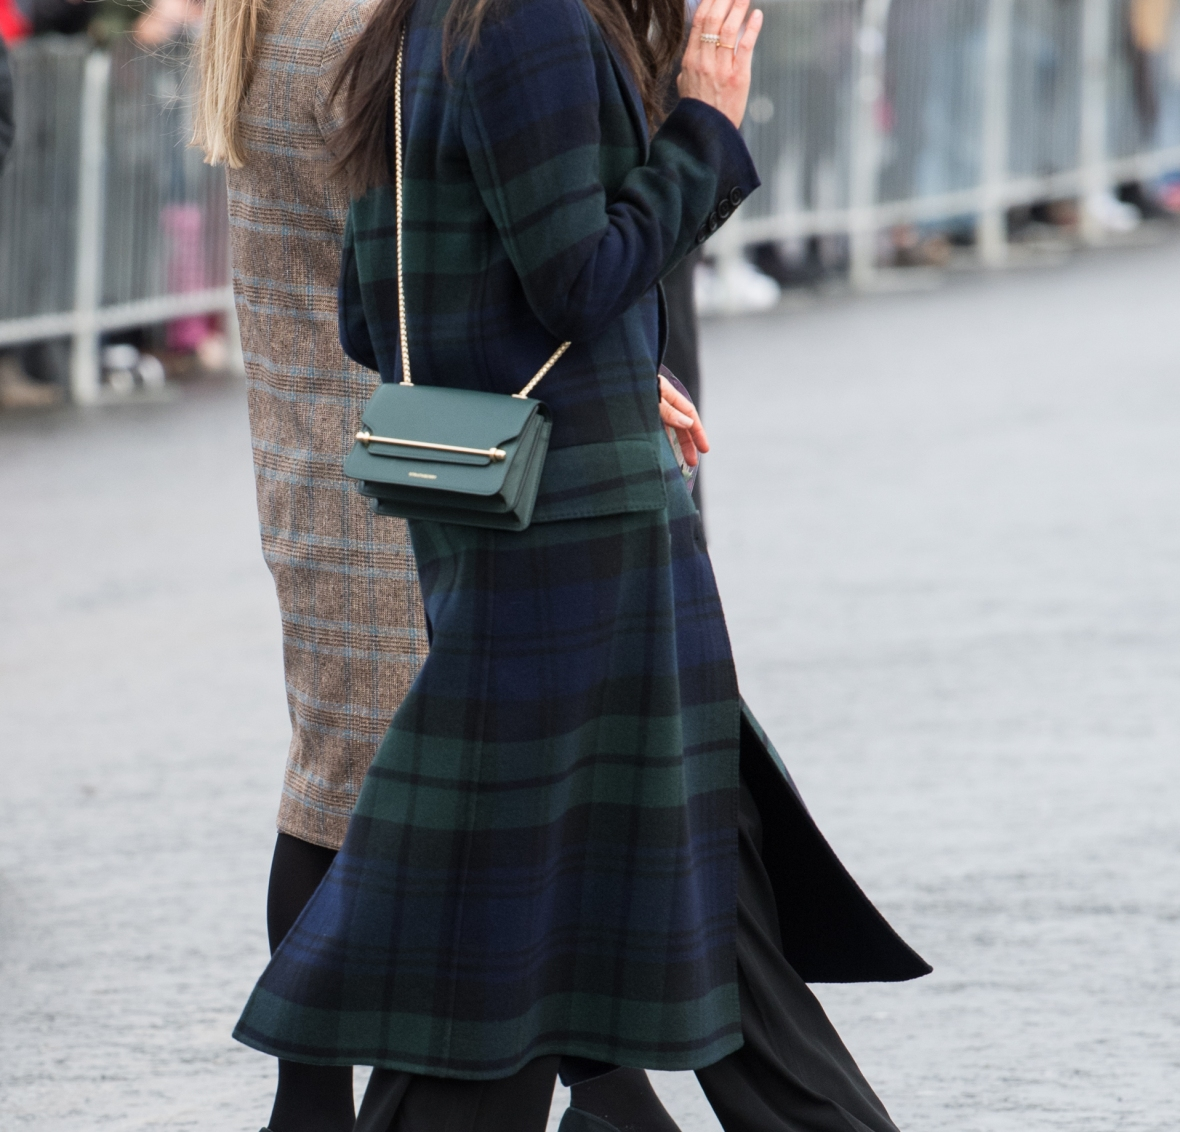 meghan markle's pants getty images